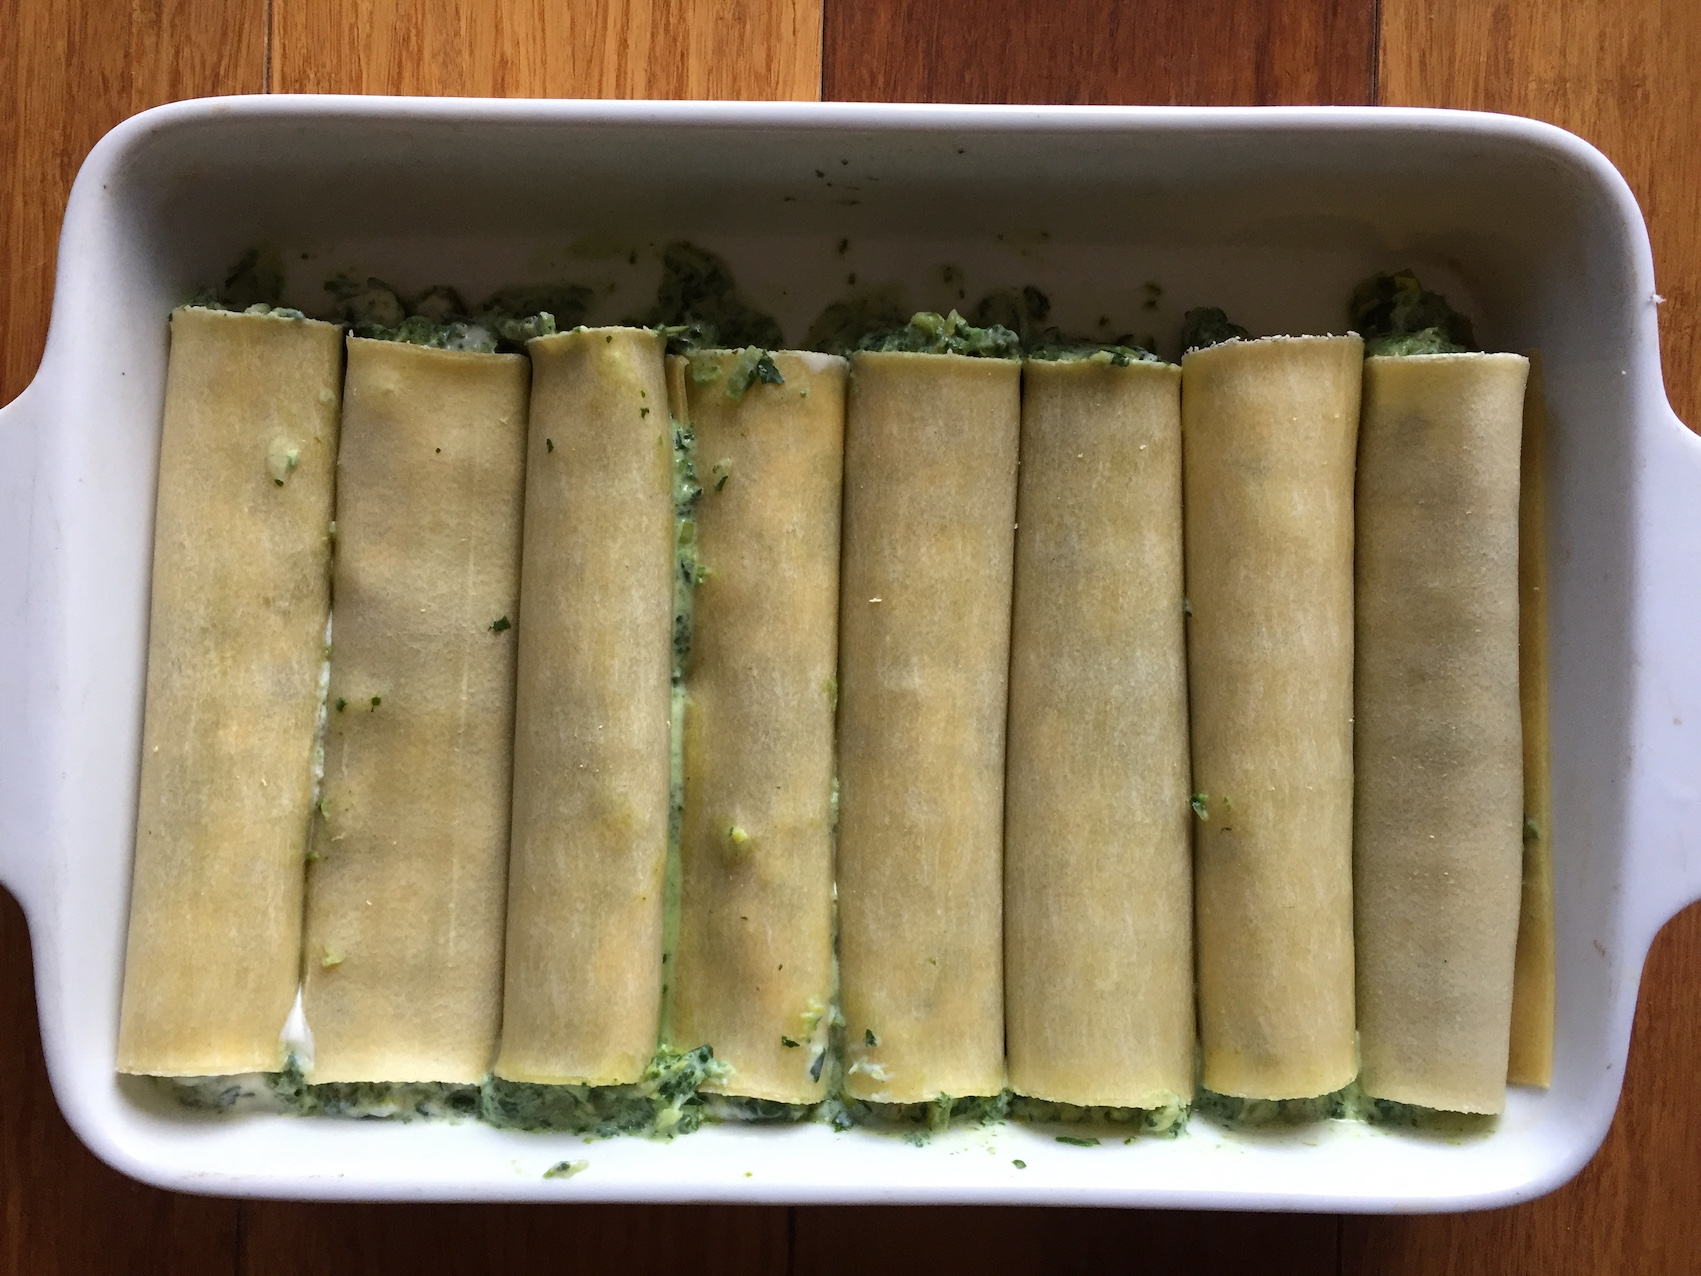 The greens and ricotta mixture wrapped in pasta sheets